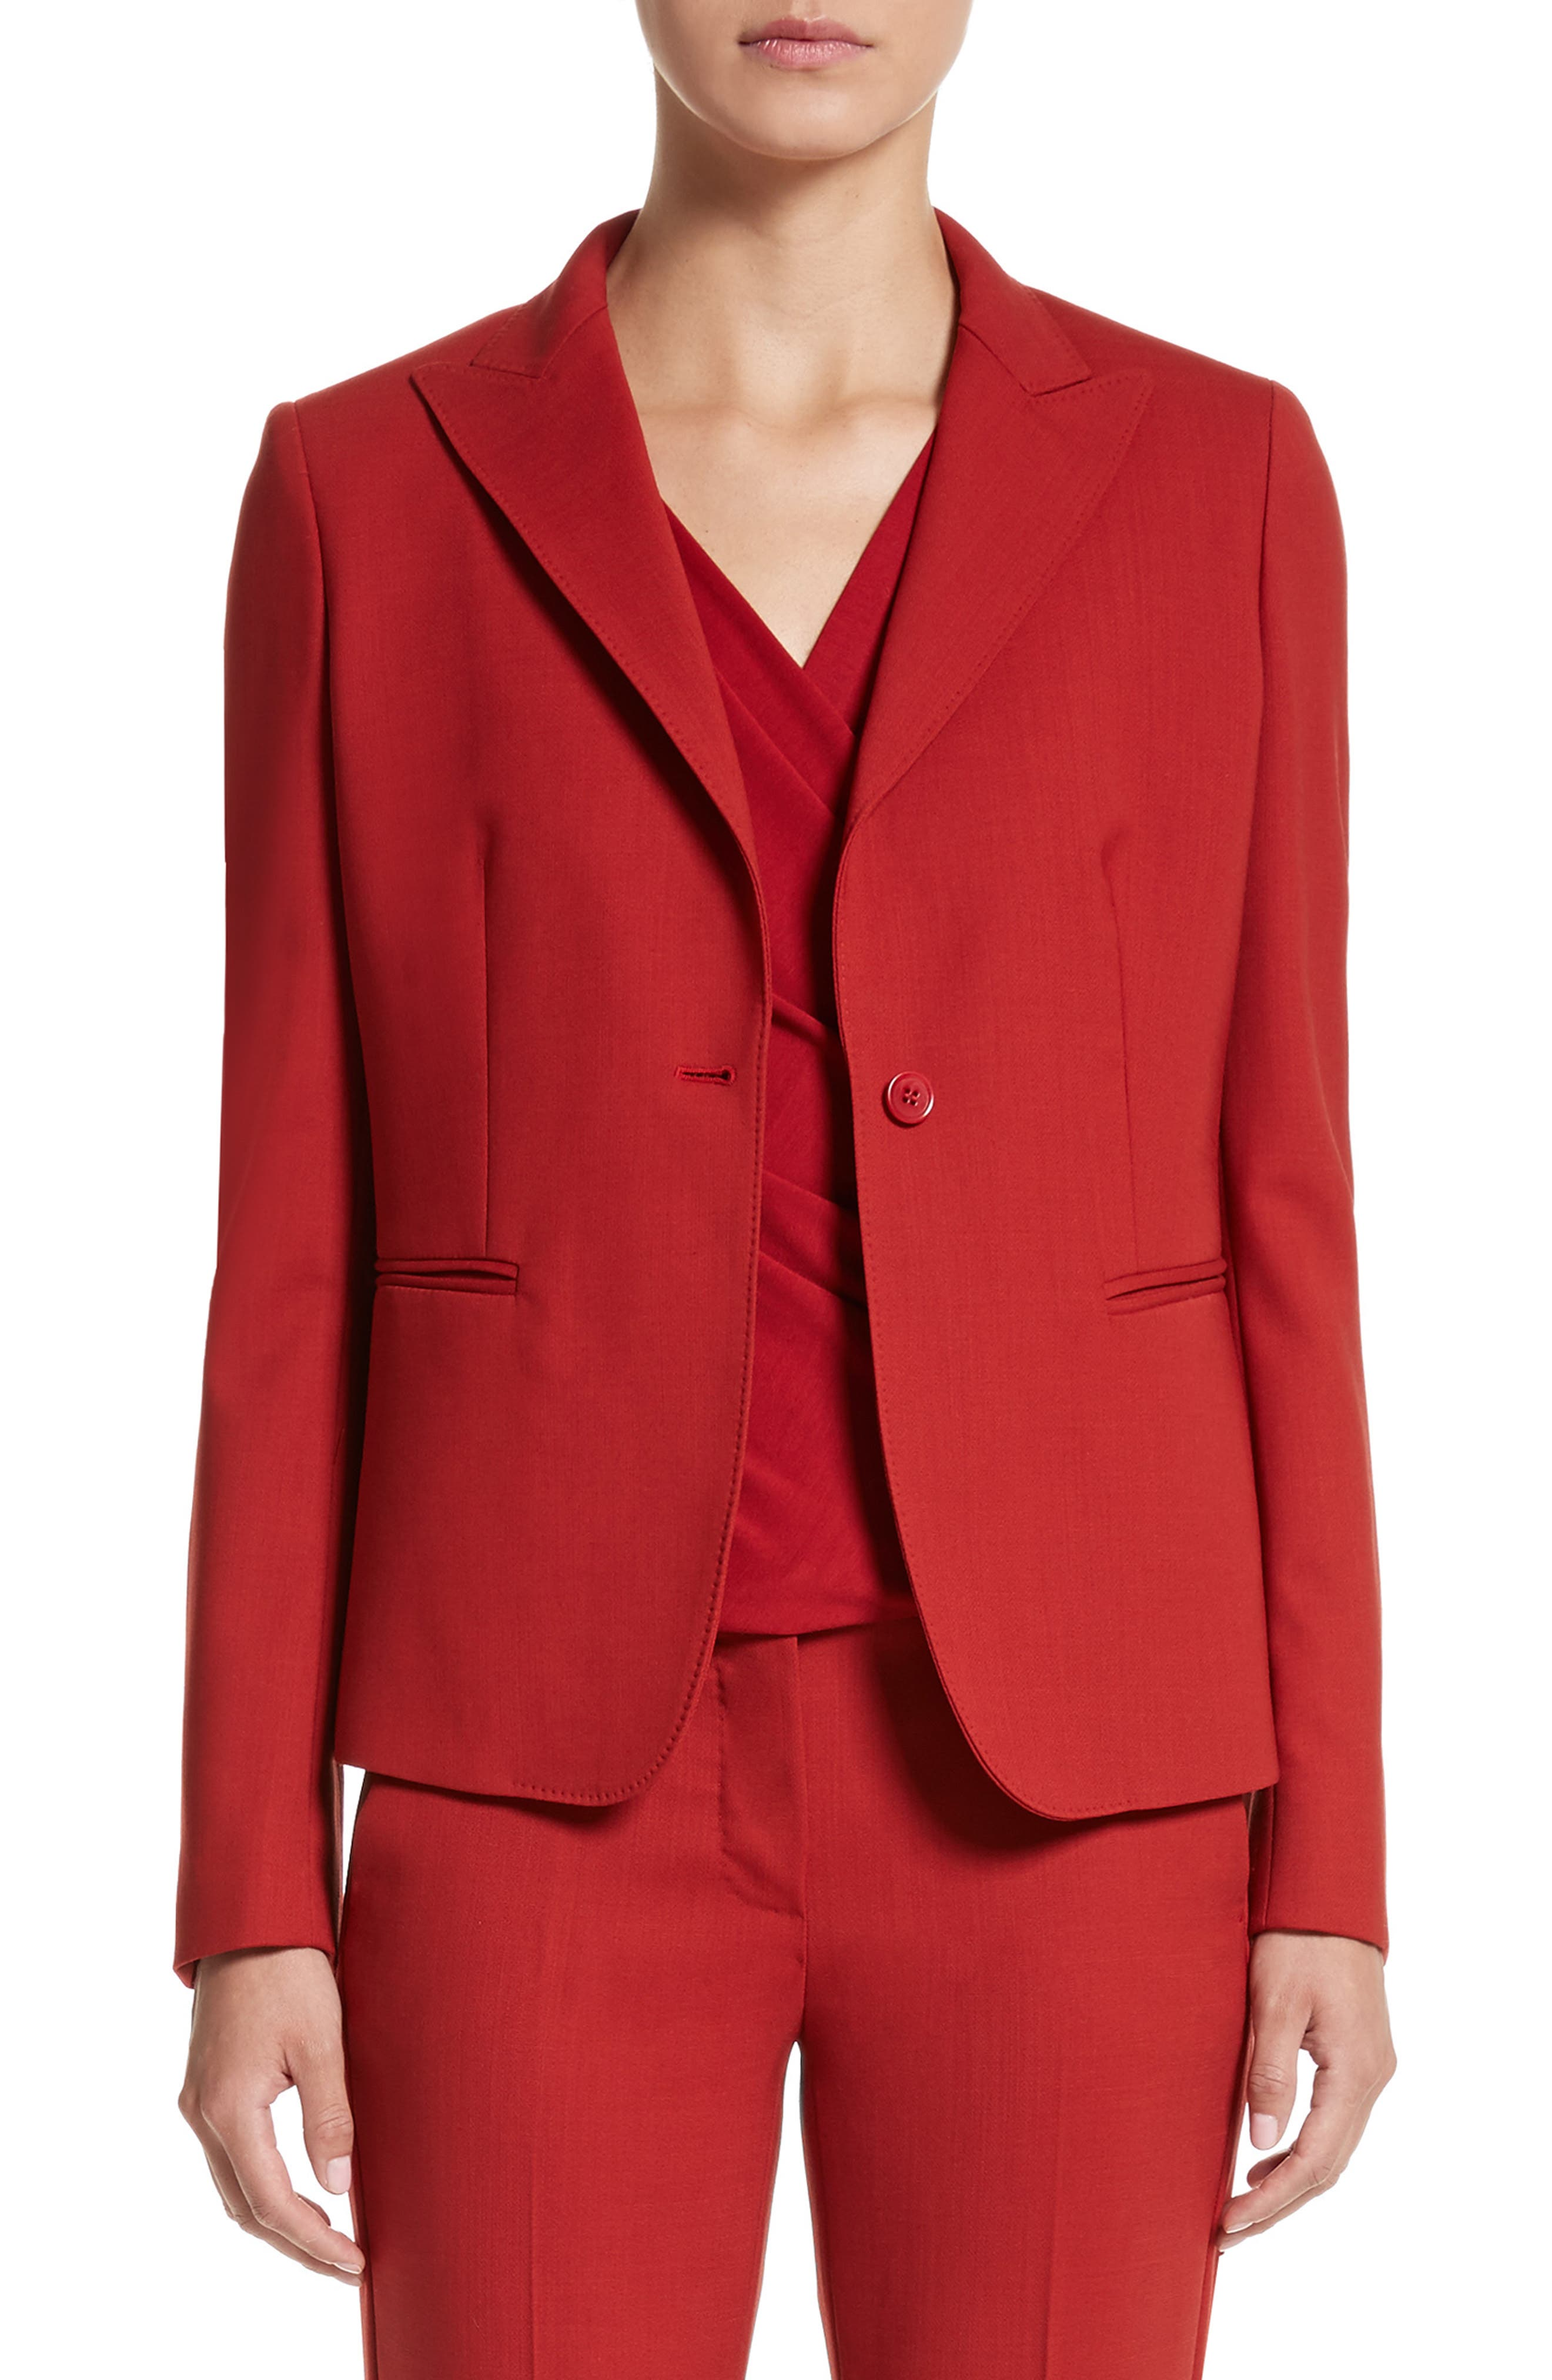 Main Image - Max Mara Umile Stretch Wool Jacket